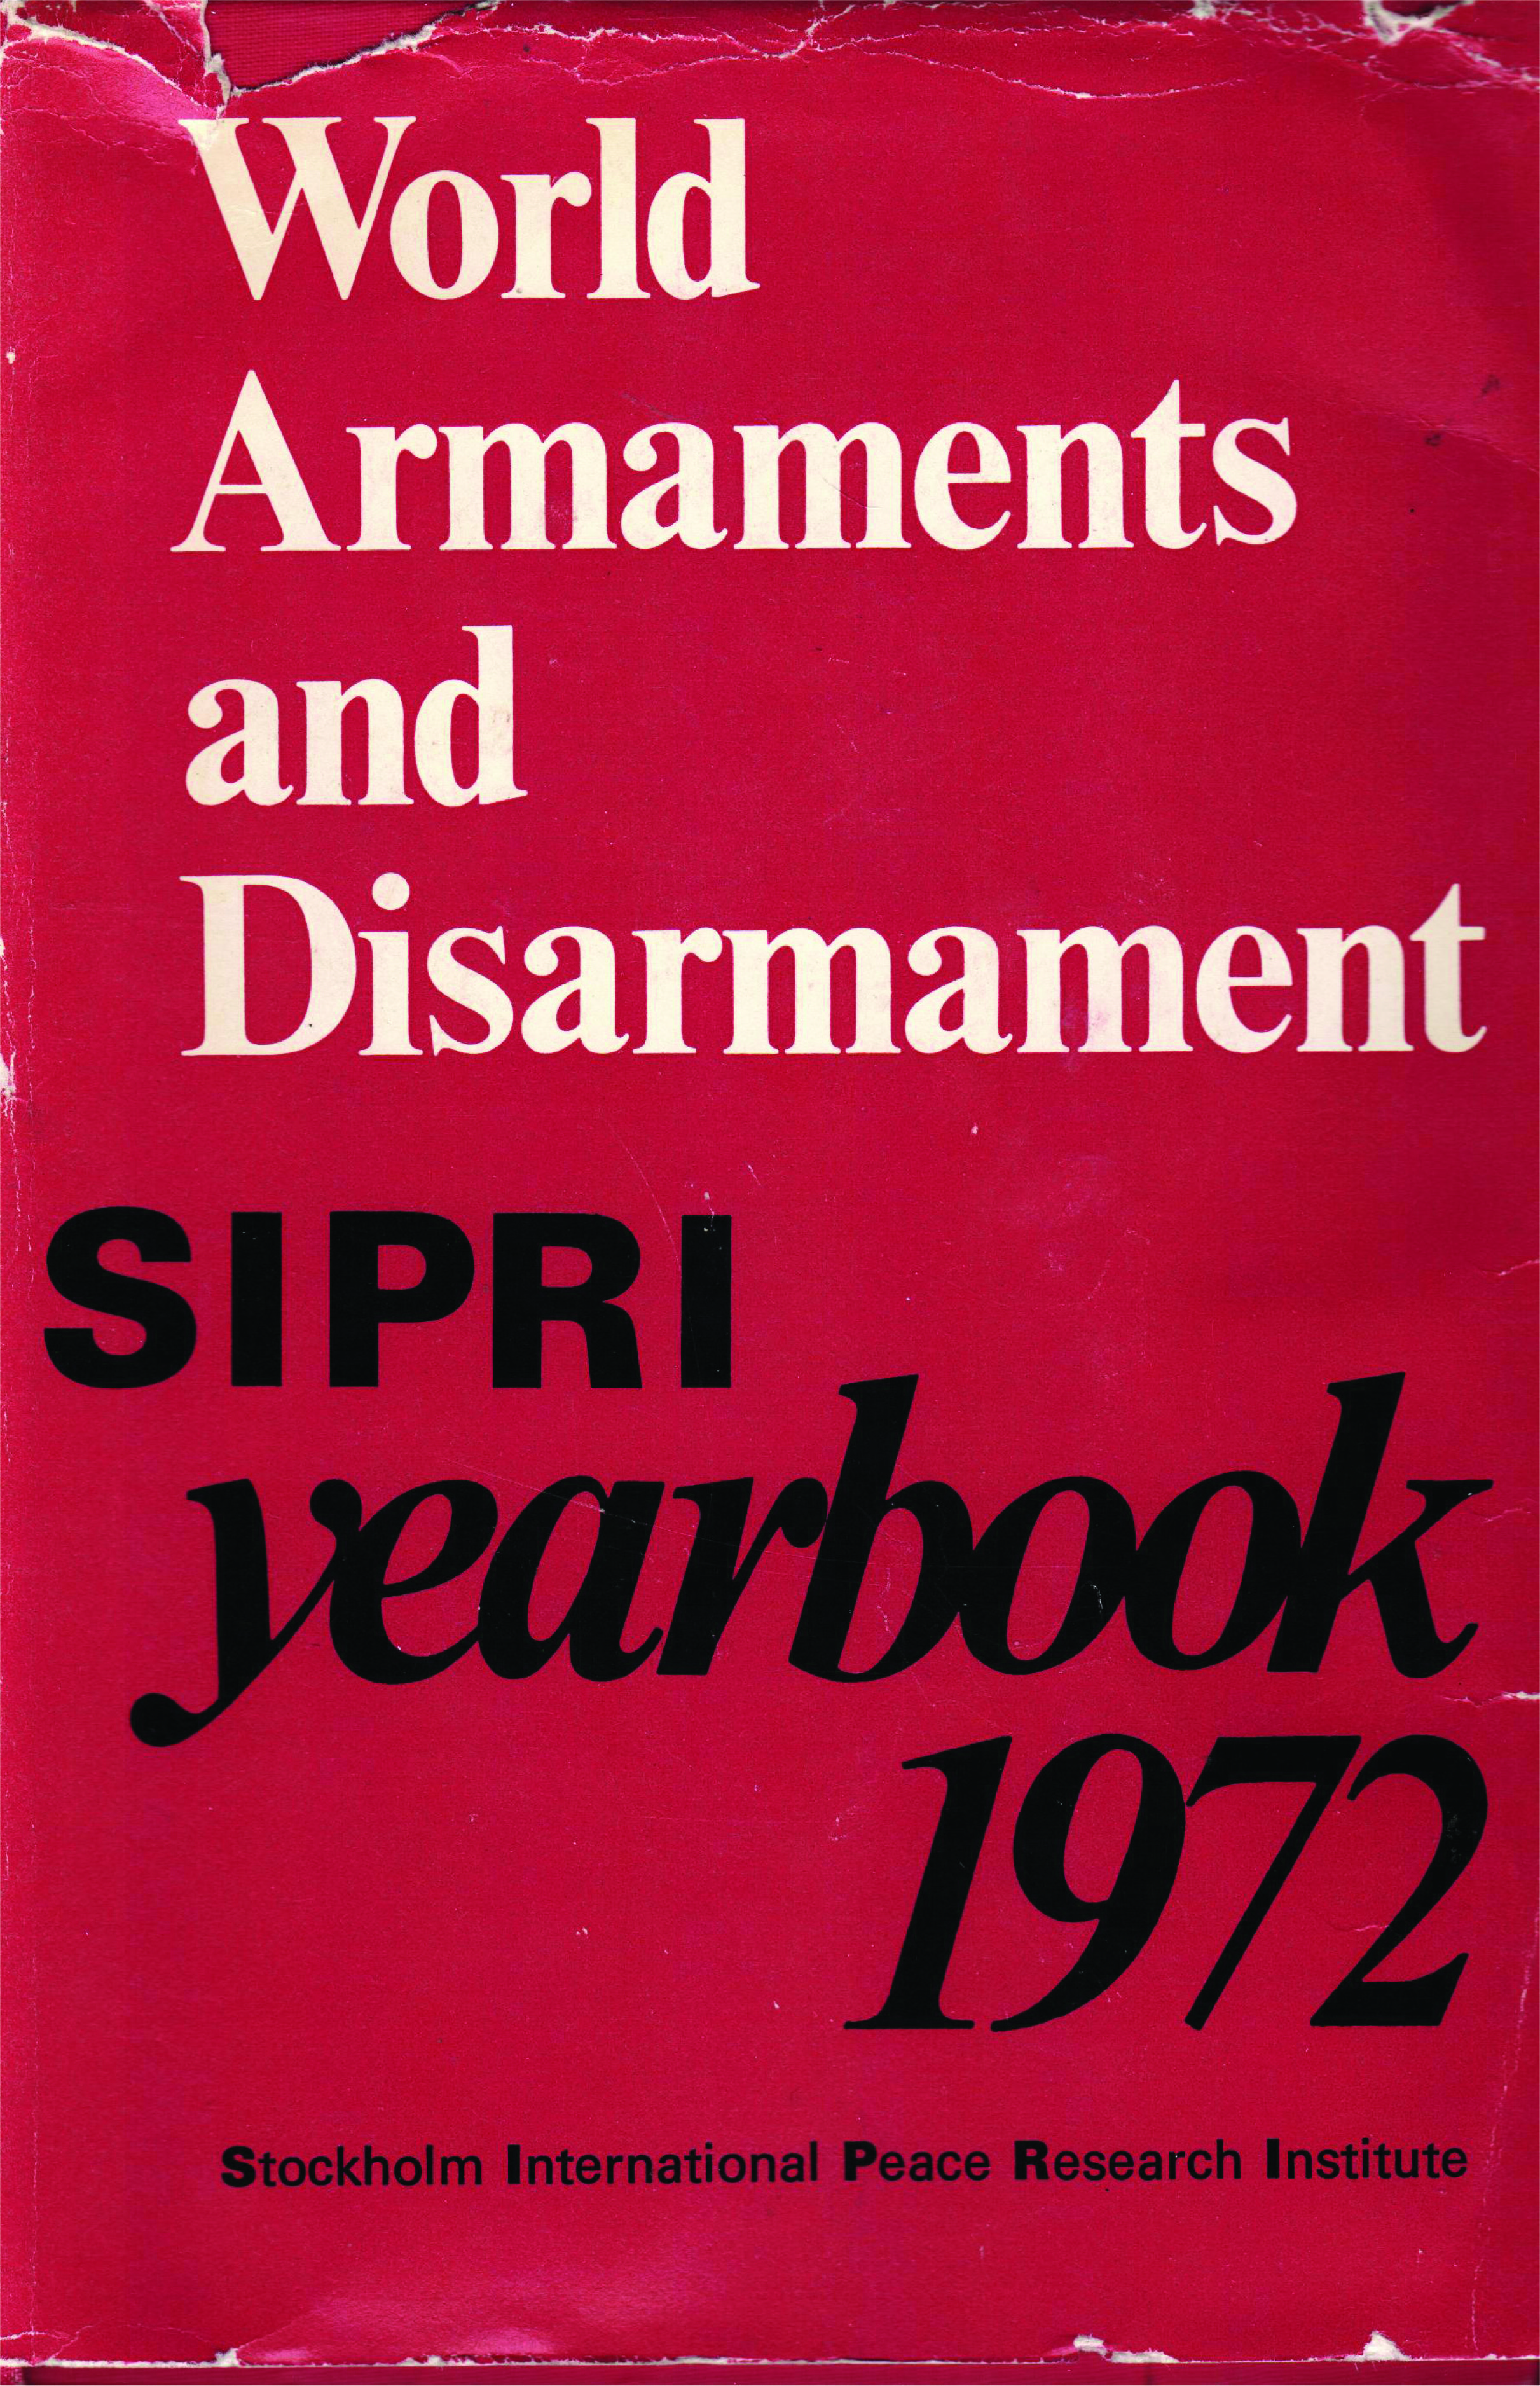 SIPRI yearbook 1972 cover